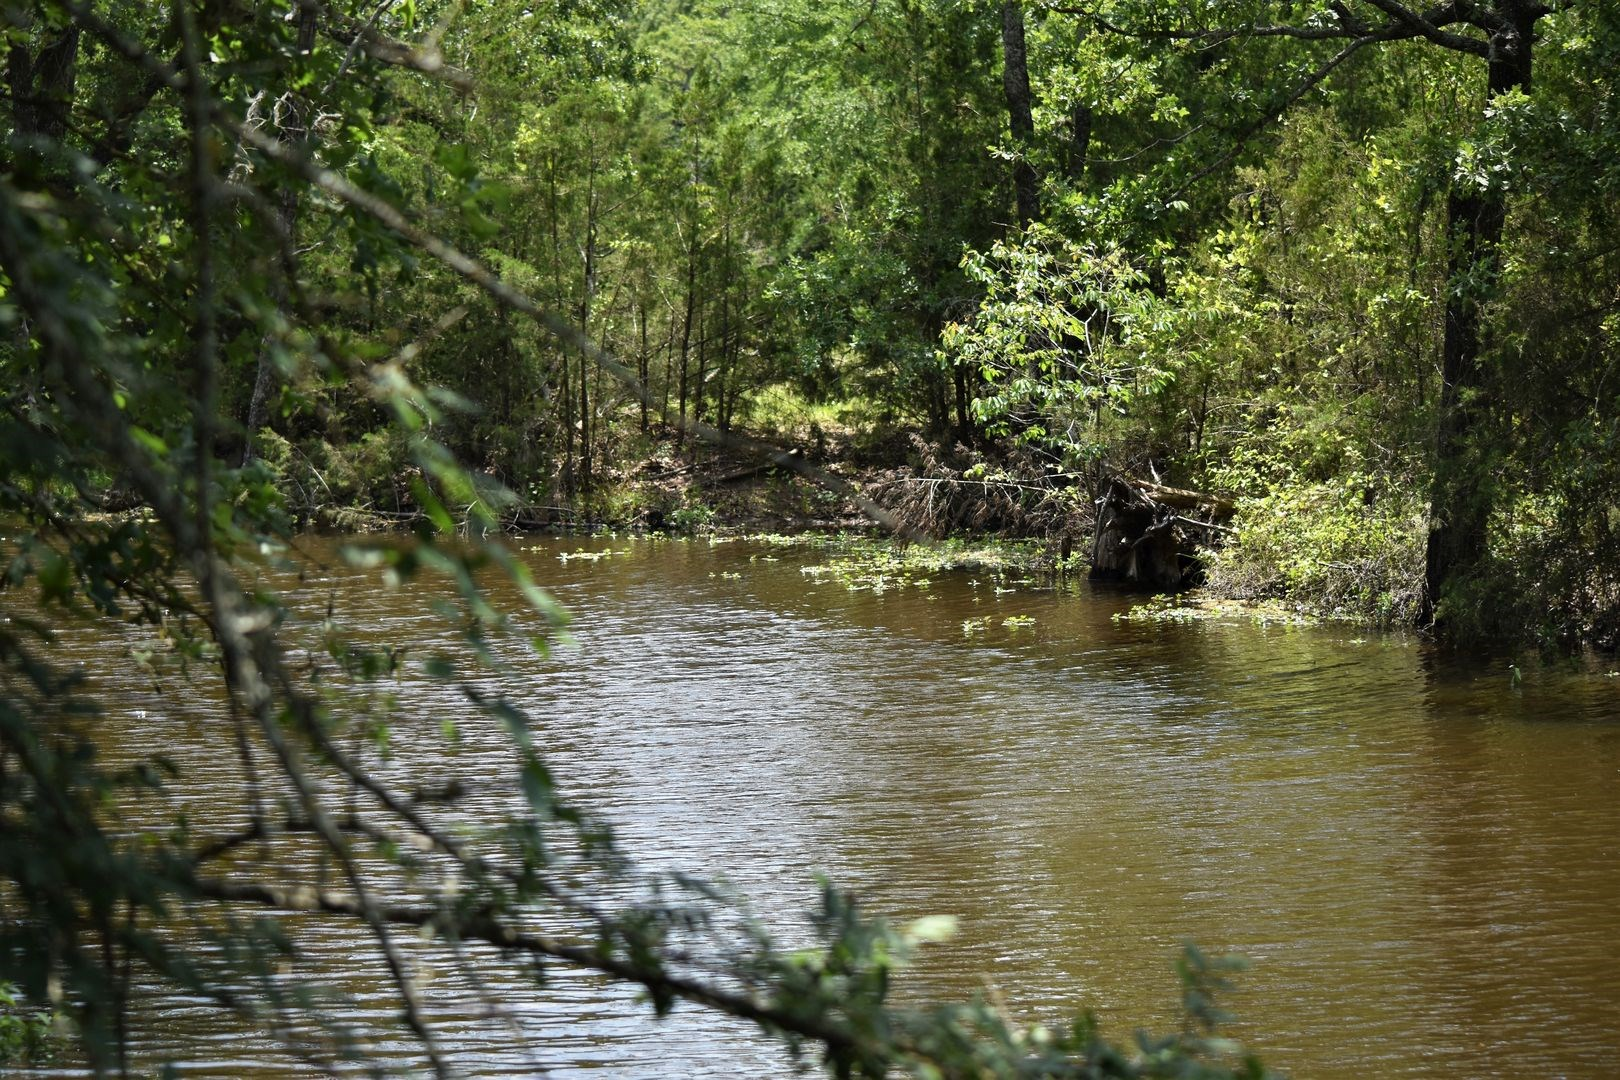 Bremond Texas Land for Sale Hunting Recreational Central TX